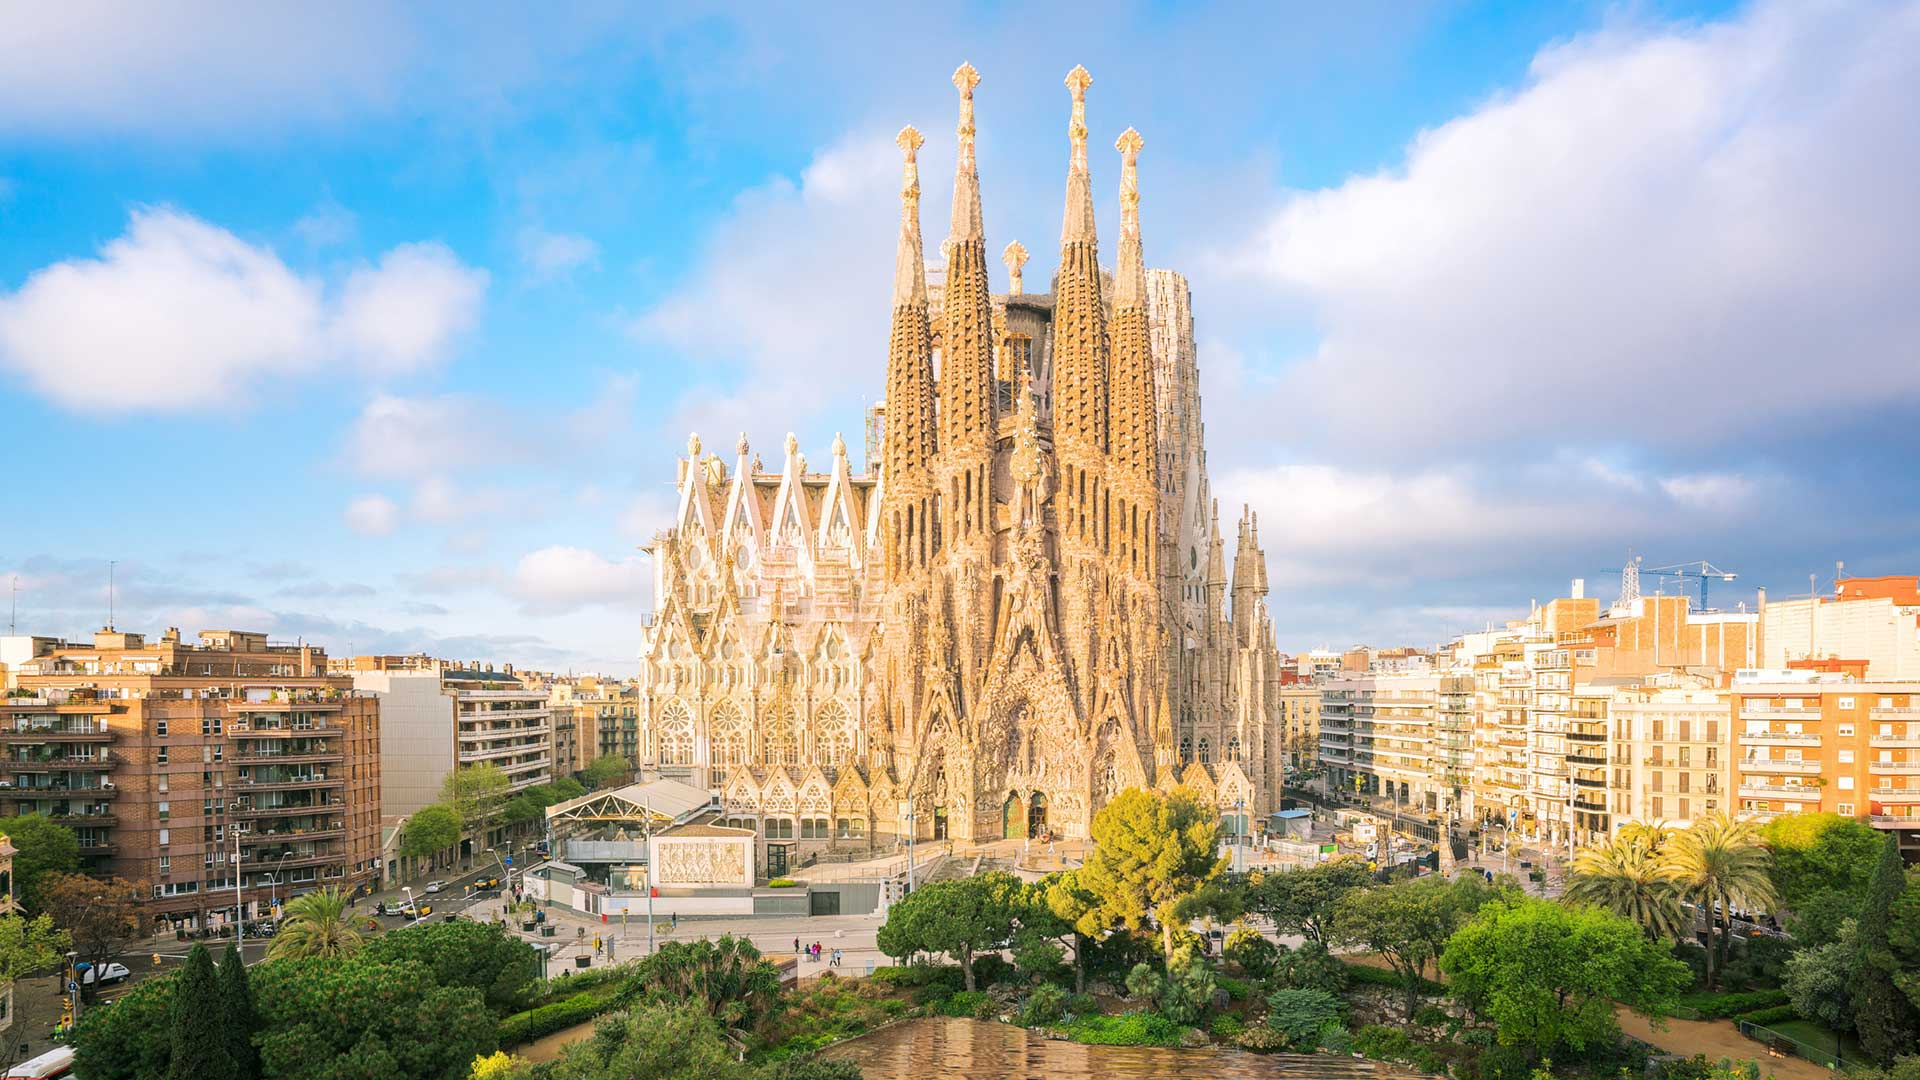 The Sagrada Familia, a yellow church rising above the city with a blue sky in the background